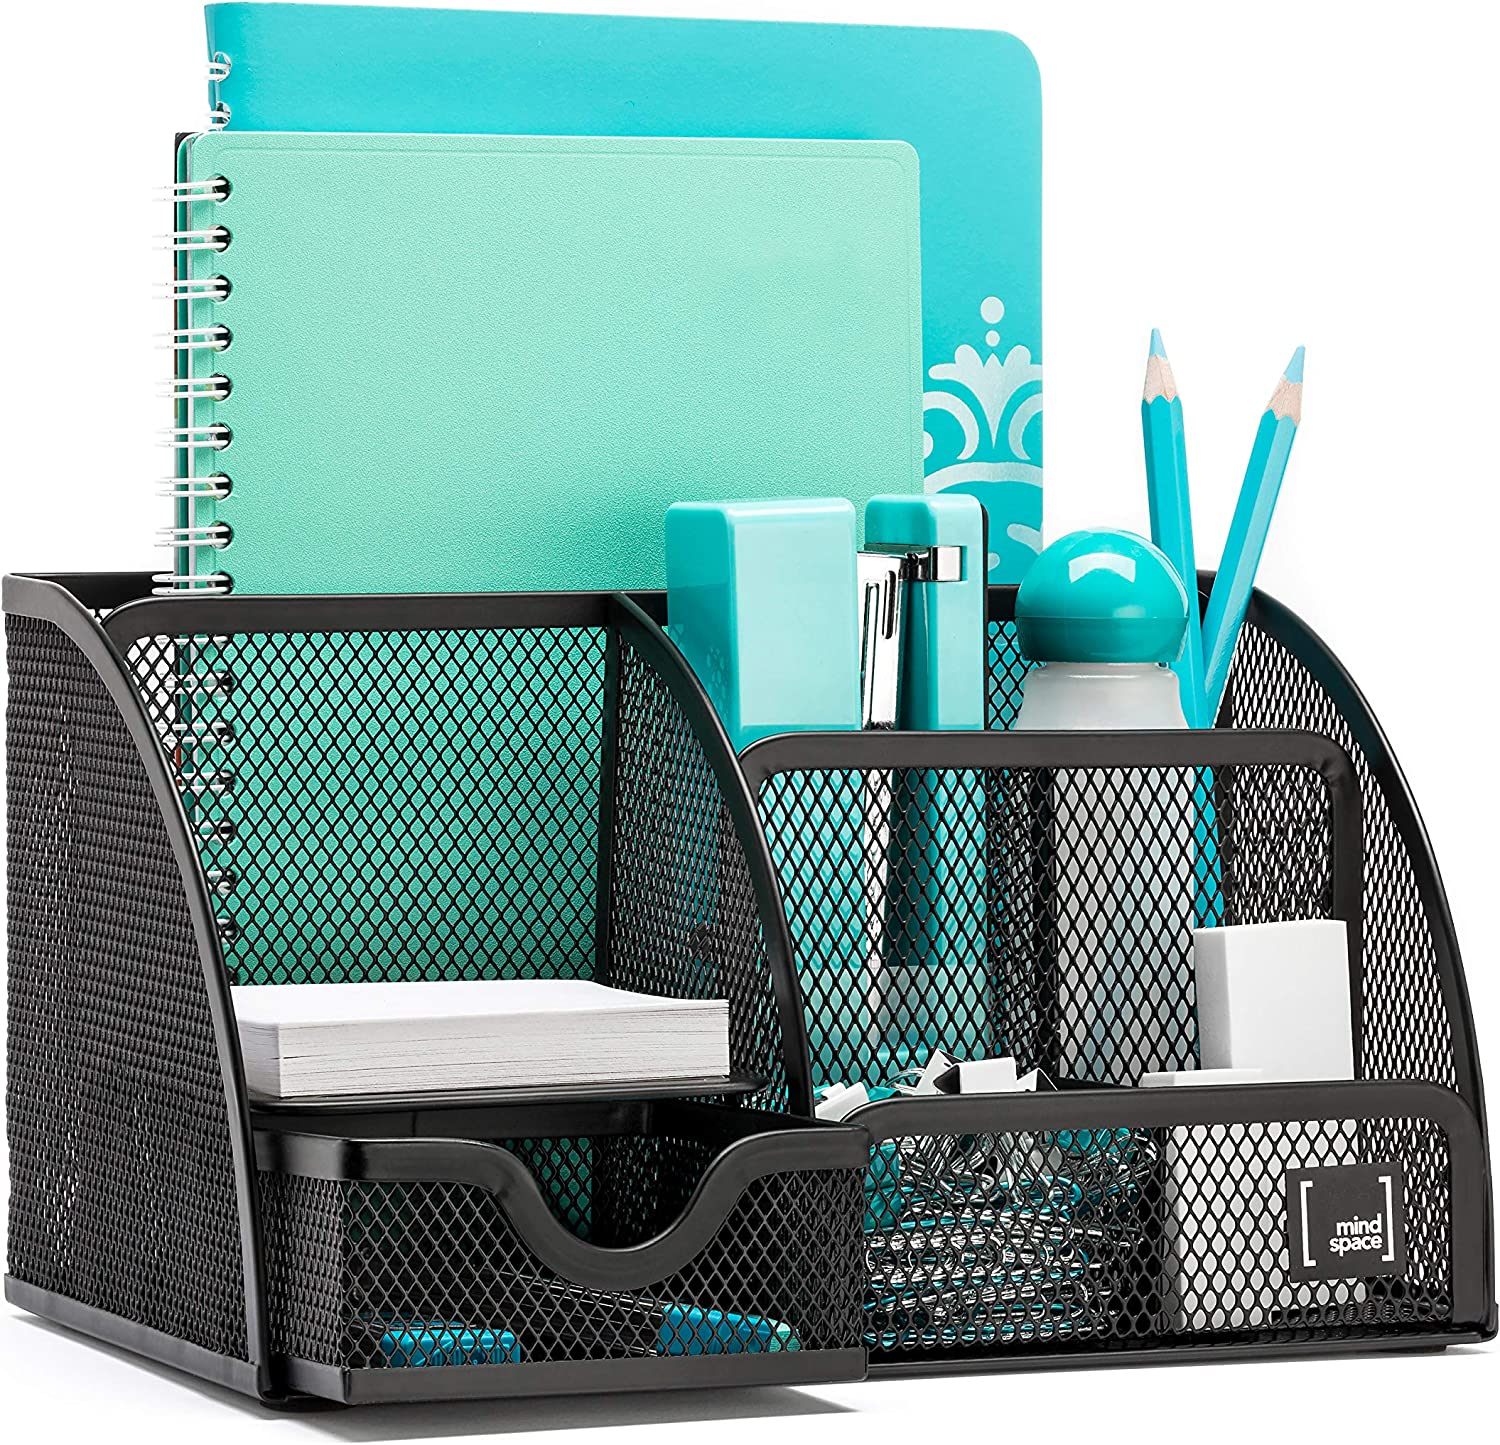 Mindspace Office Desk Organizer with 33 Compartments + Drawer  The Mesh  Collection, Black